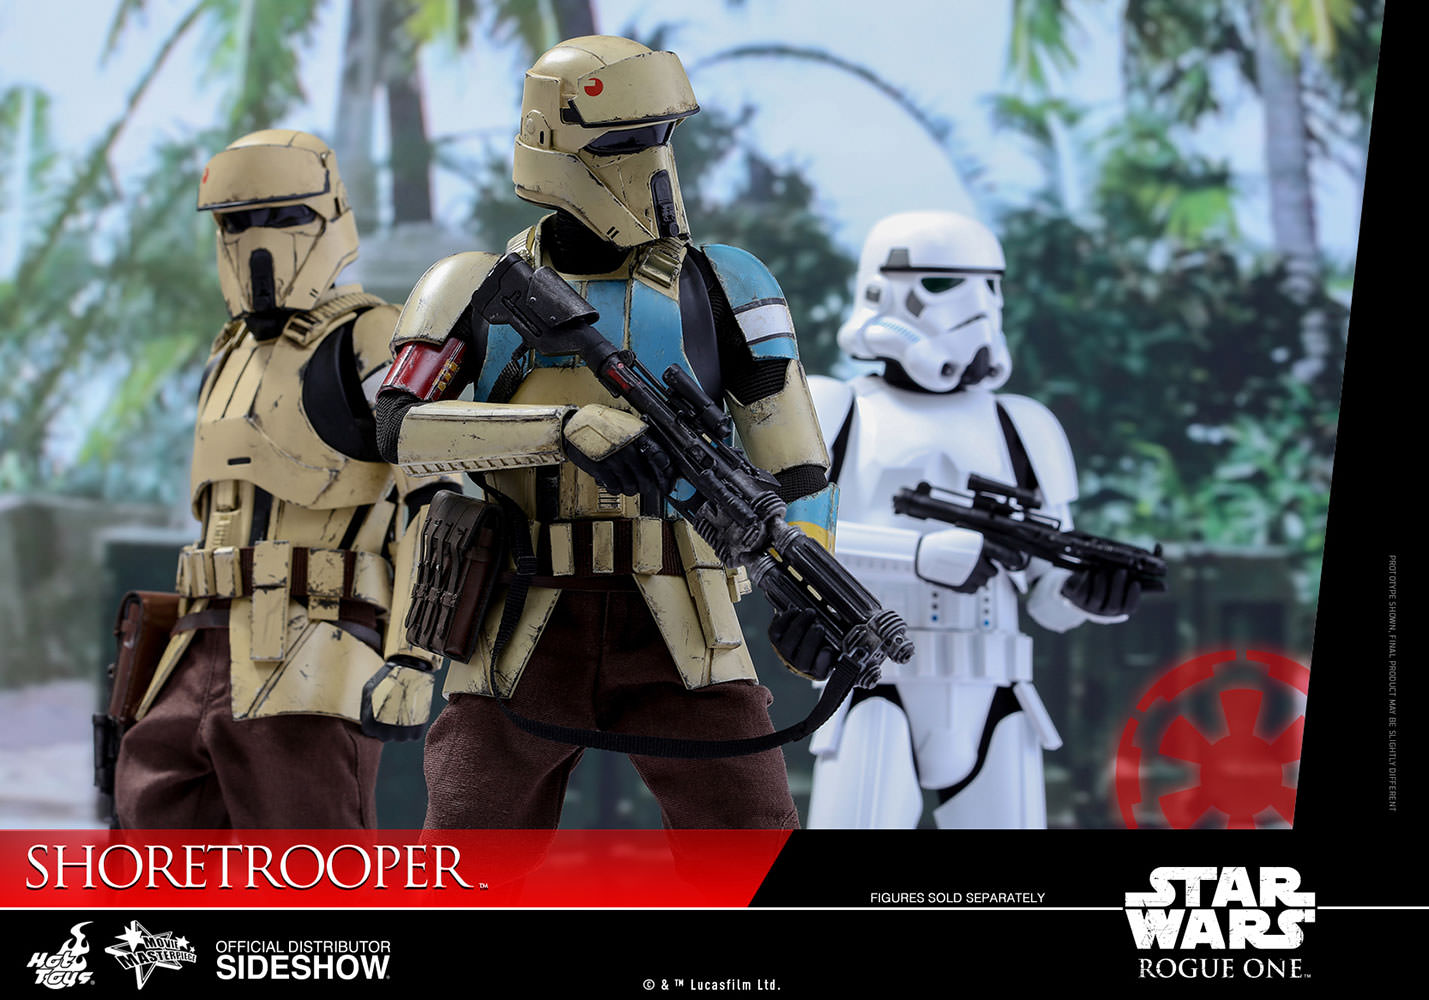 szmk_sideshow_star_wars_shoretrooper_3.jpg